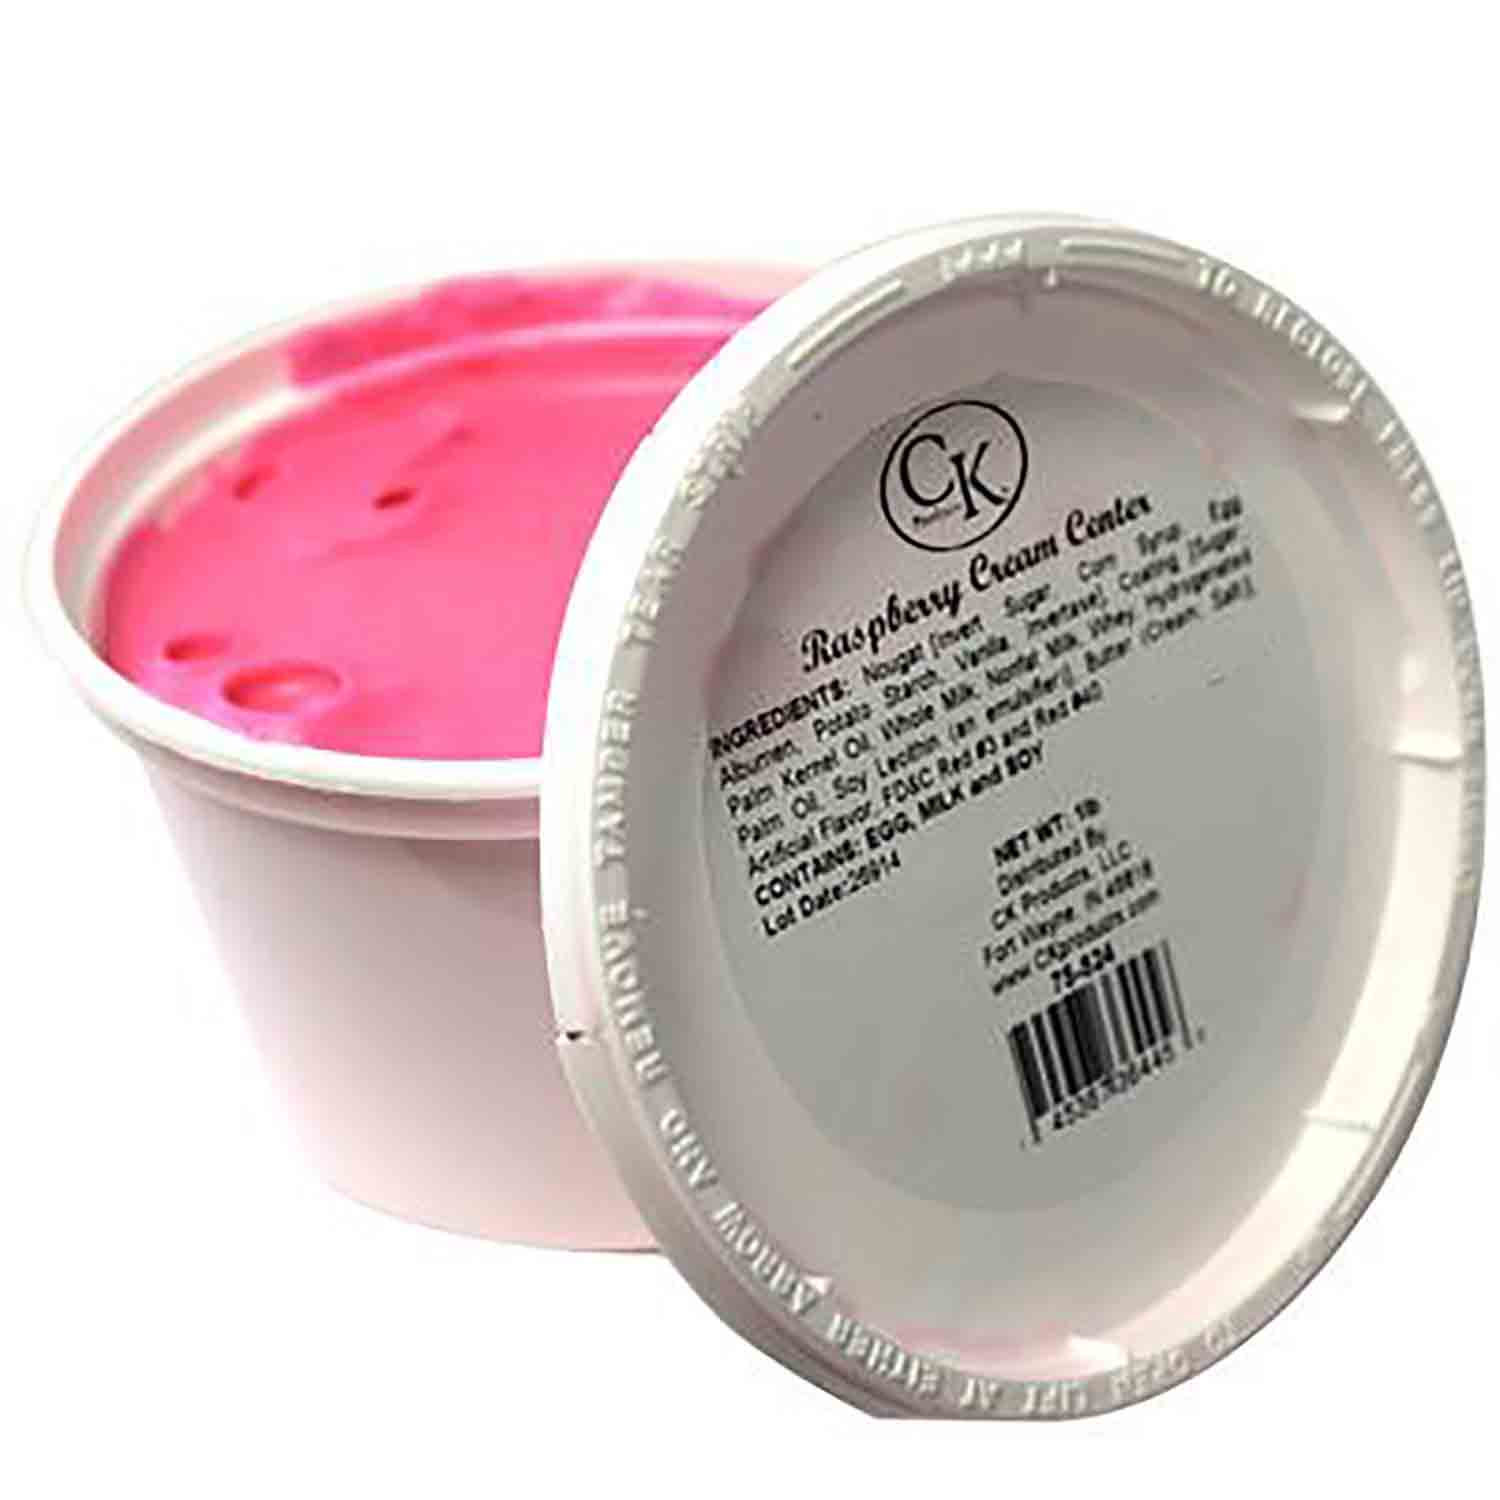 Raspberry Cream Center by CK Products/Burkes